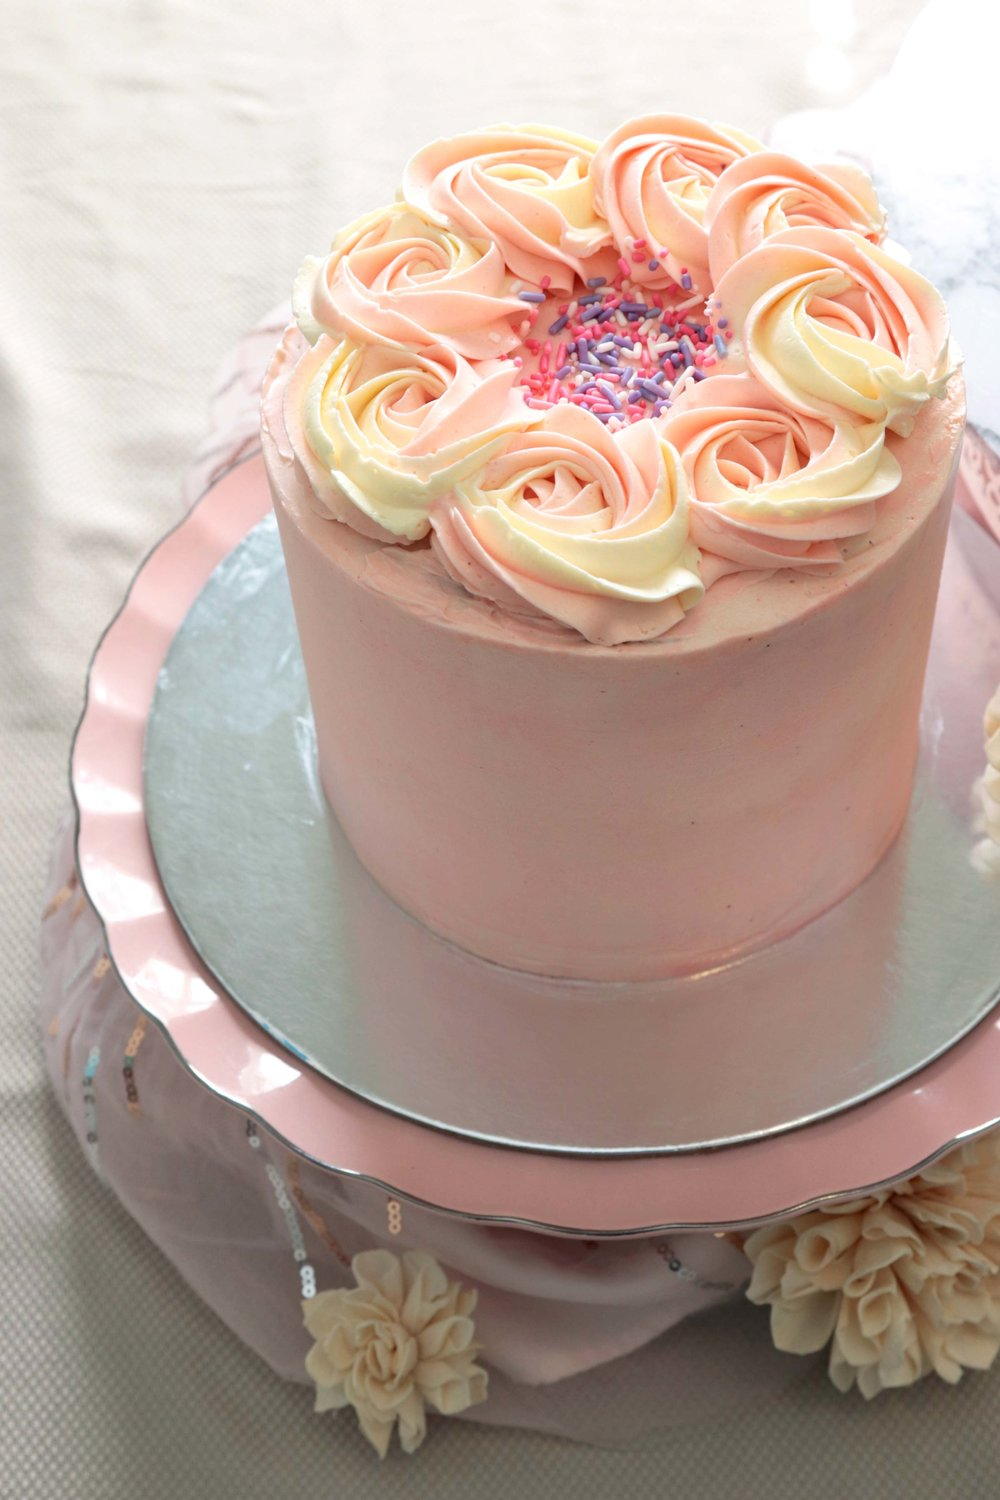 The_Little_Cake_Maker_Perth_Baker_CustomCakes_DayCakes_Slices_Tarts_Cupcakes_Day_Cakes_1.jpg